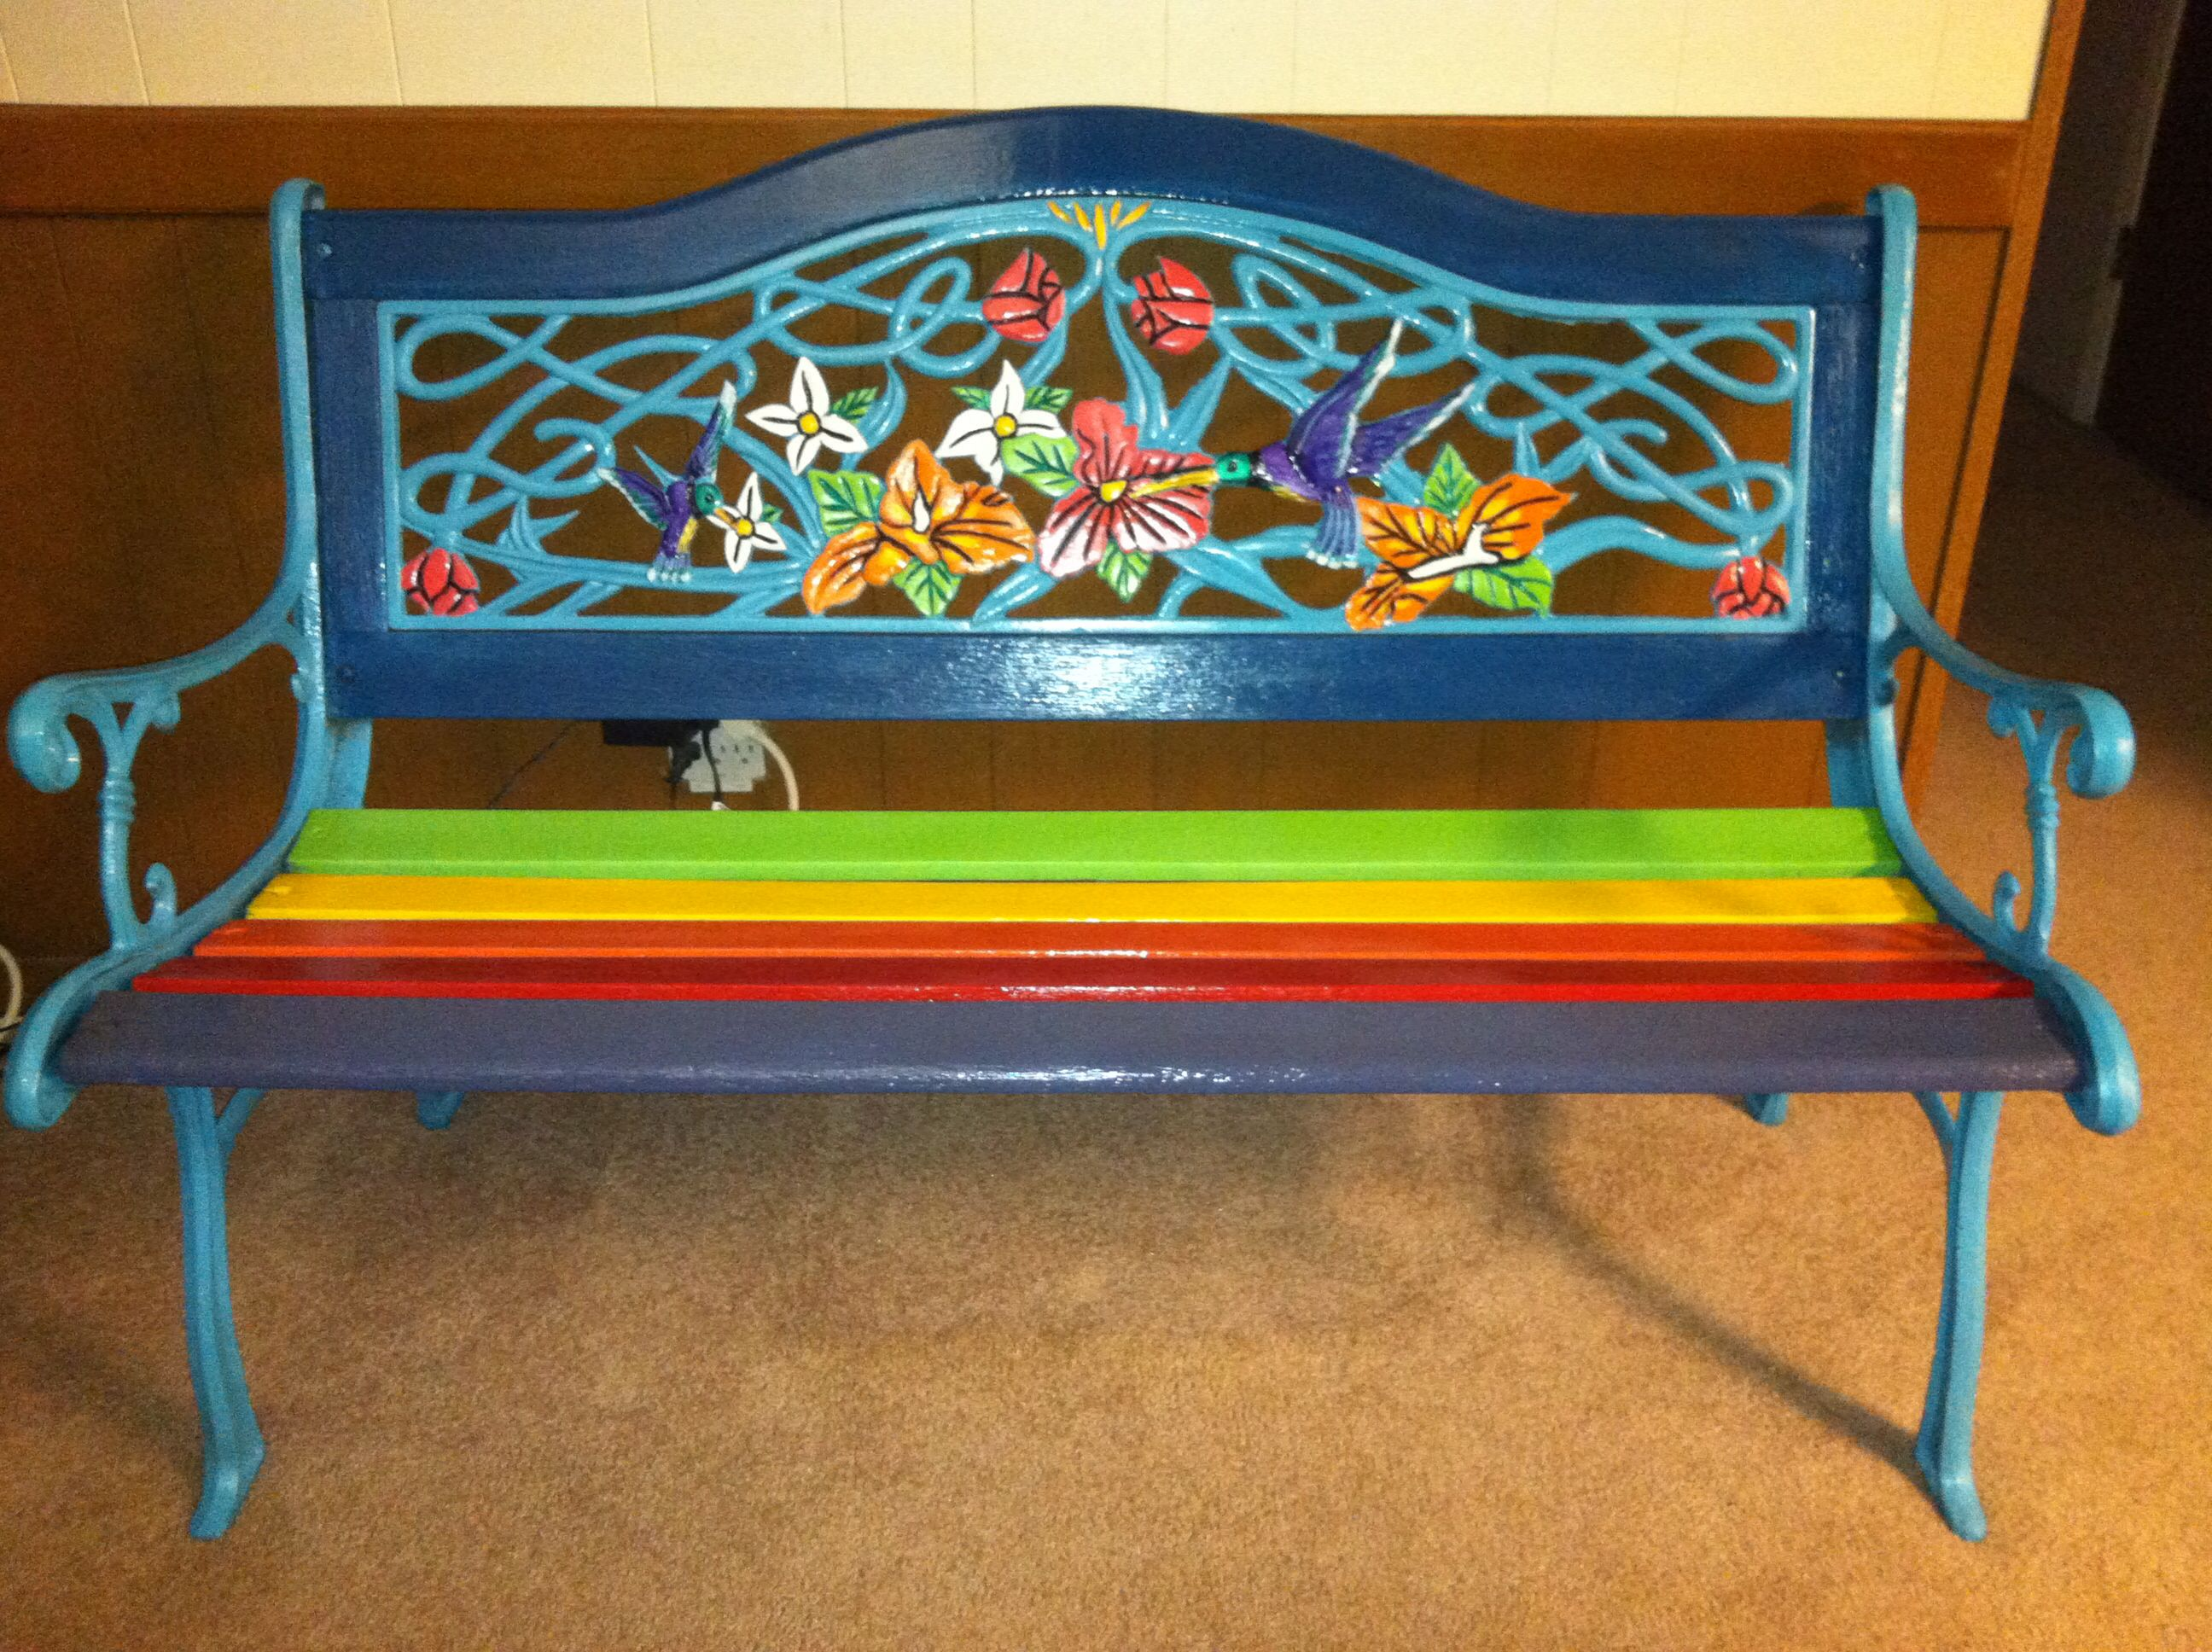 Hand Painted Rainbow (cast Iron) Bench I Refurbished For My Friend Maritza  Justiniano! Wrought Iron BenchGarden ...